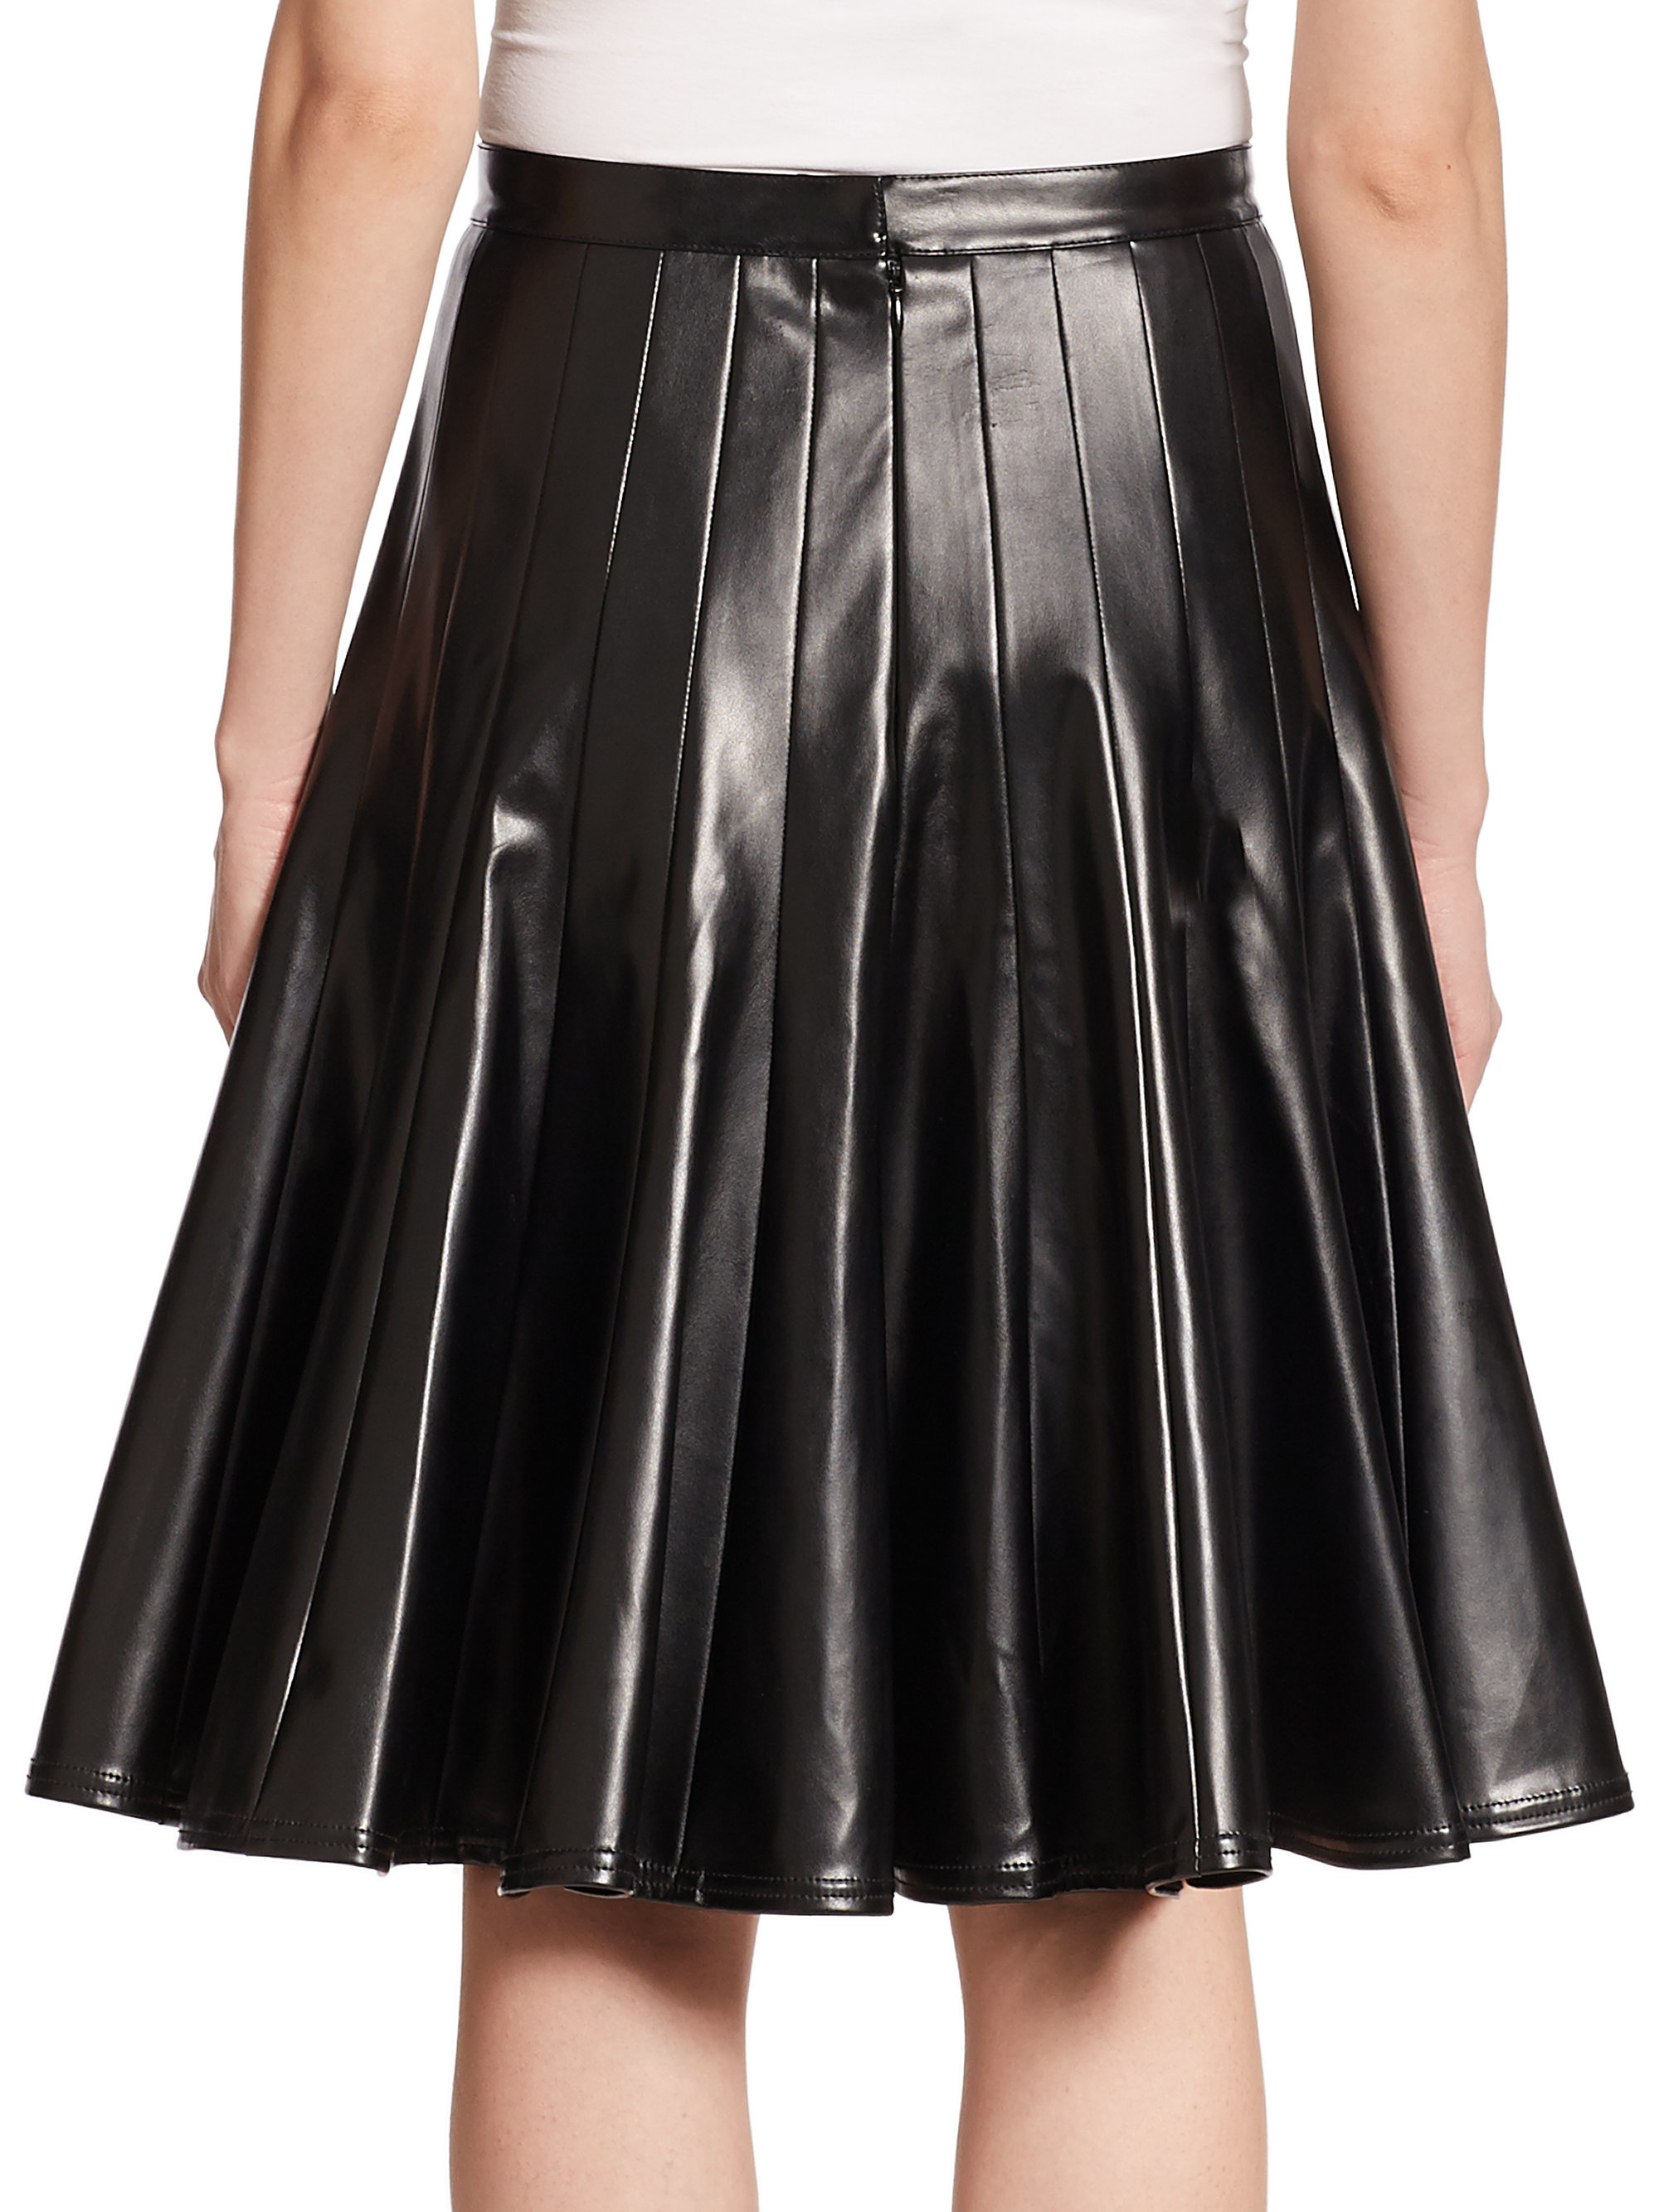 Faux Leather Skirts Styles Found The faux leather skirt is a timeless piece that goes with everything, looks good always and can be dressed up or down with a swift change of top and shoes.